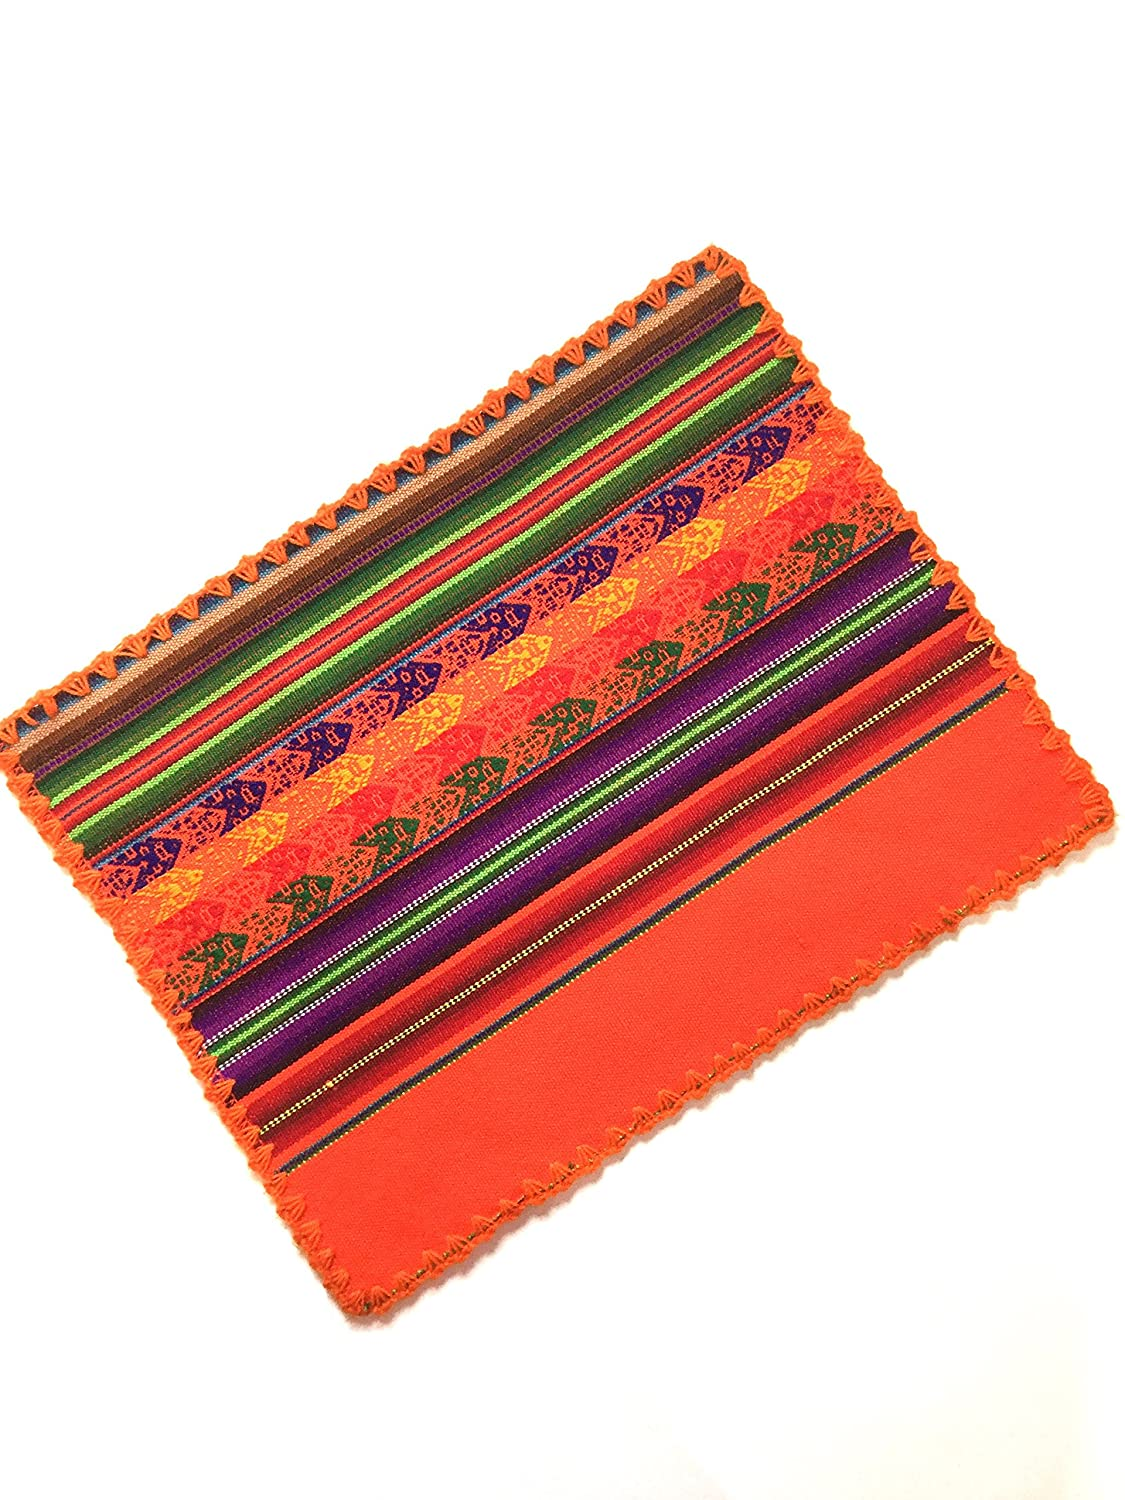 Amazon.com: ArtCus Orange Multicolor Dining Decor Place Mat Peruvian Textile Manta, Tapestry 16